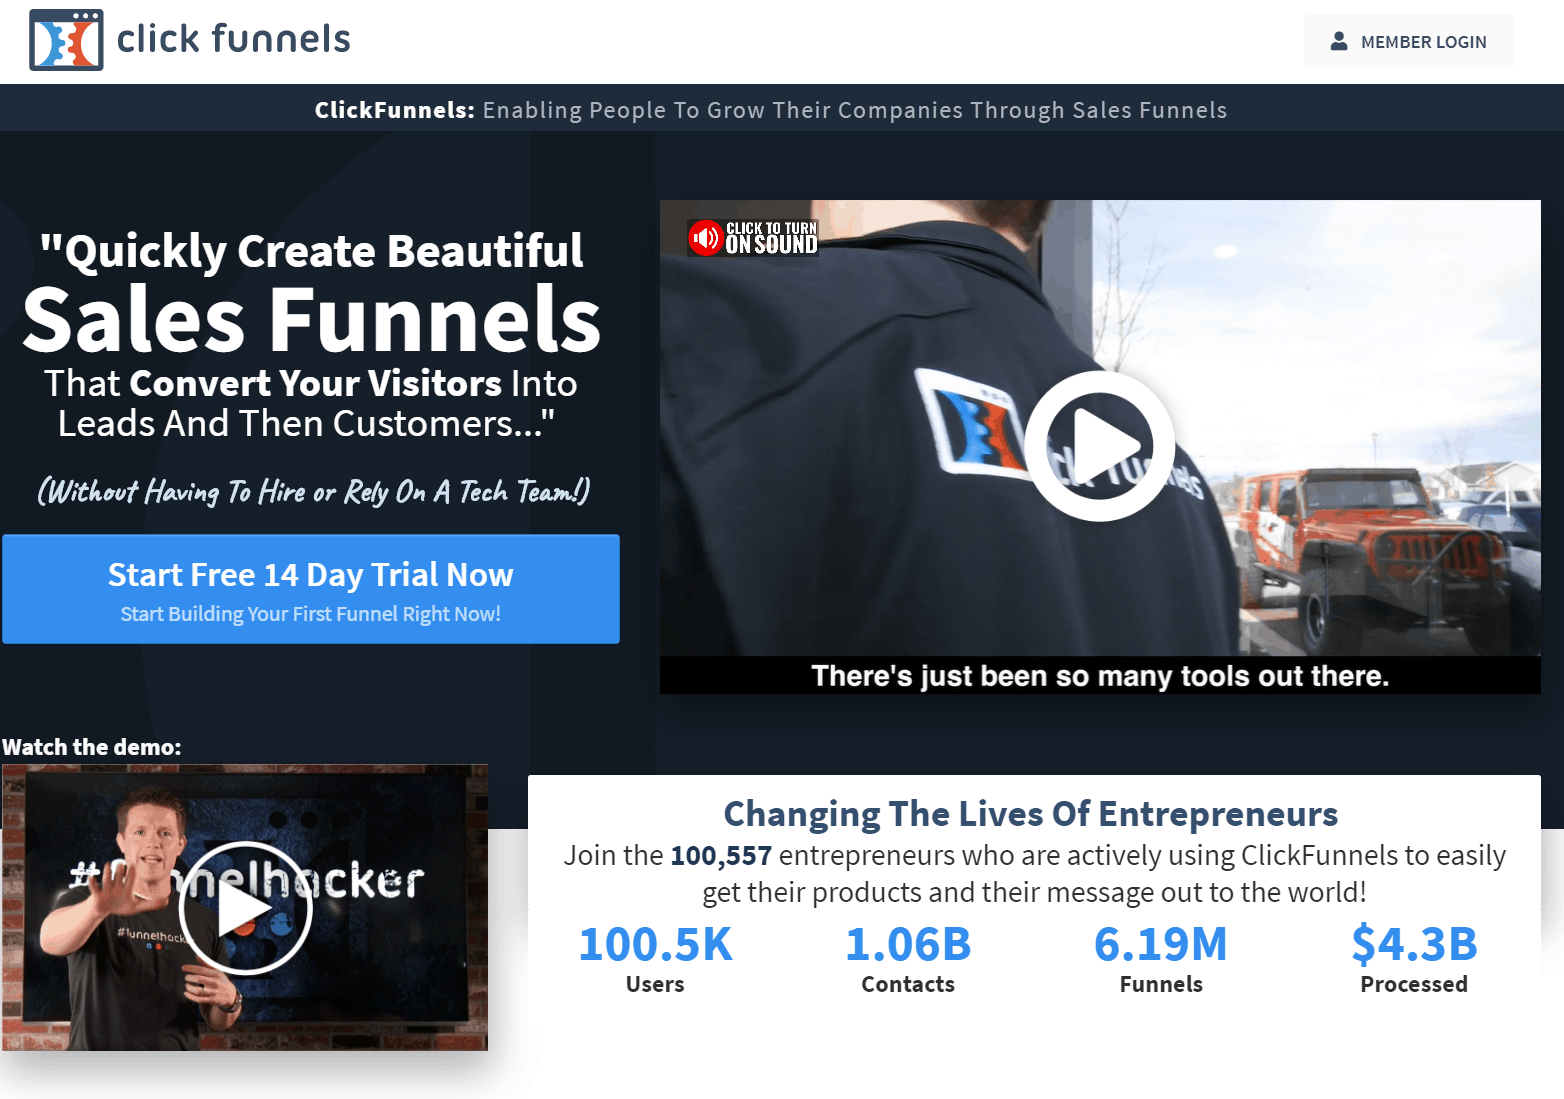 ClickFunnels Sales Funnel Software Home Page